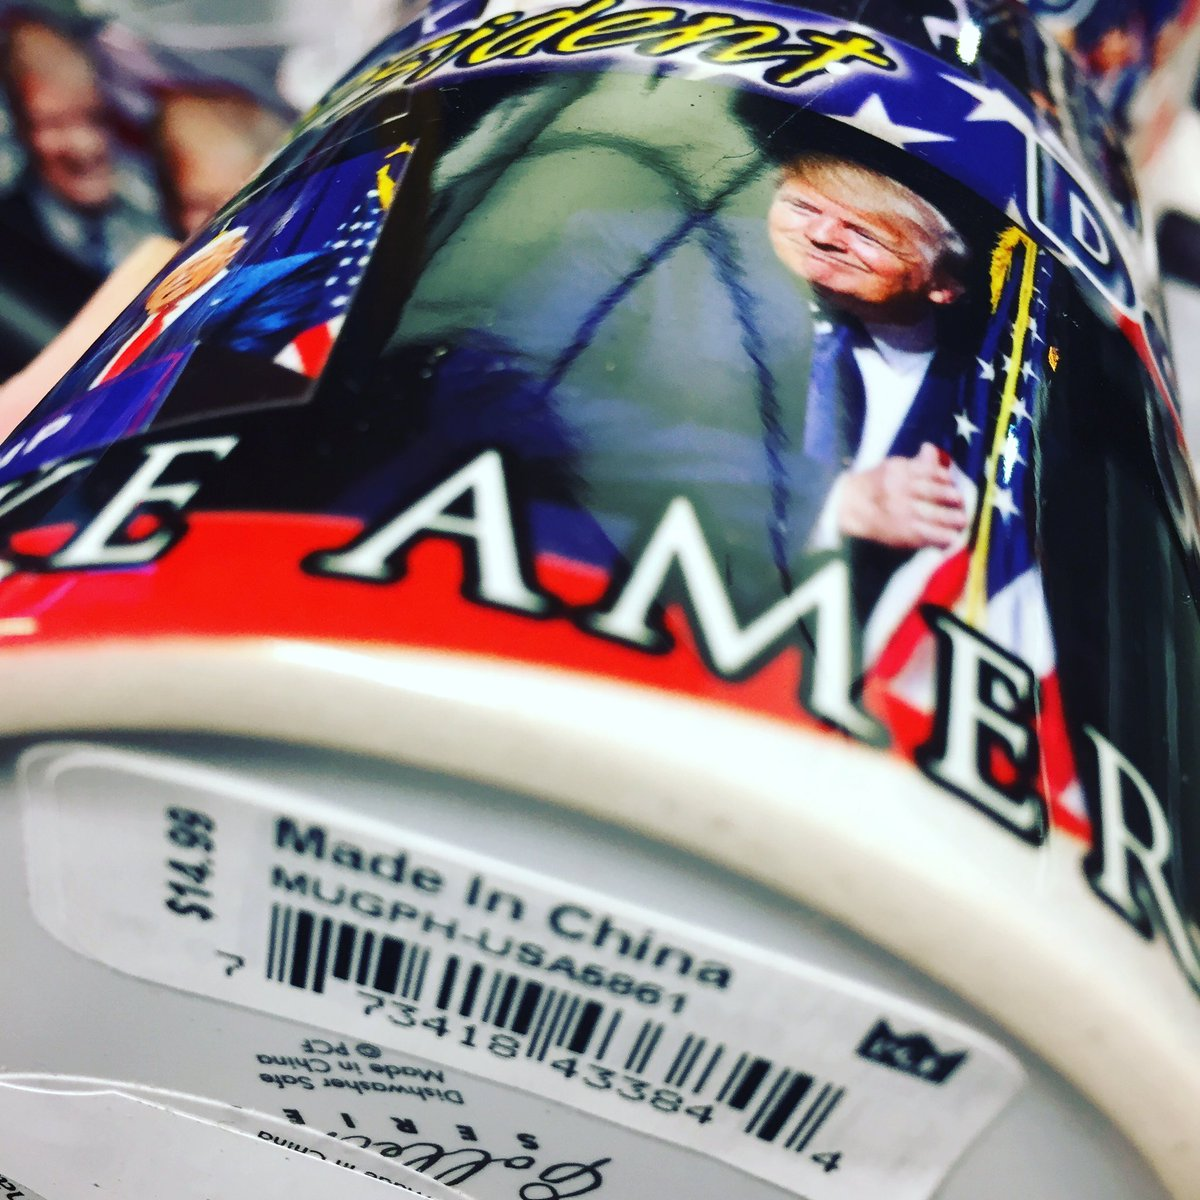 RT @tomgreenlive: New Donald Trump mugs available at Washington DC airport.  Made in China. https://t.co/SdJy8c4ycQ